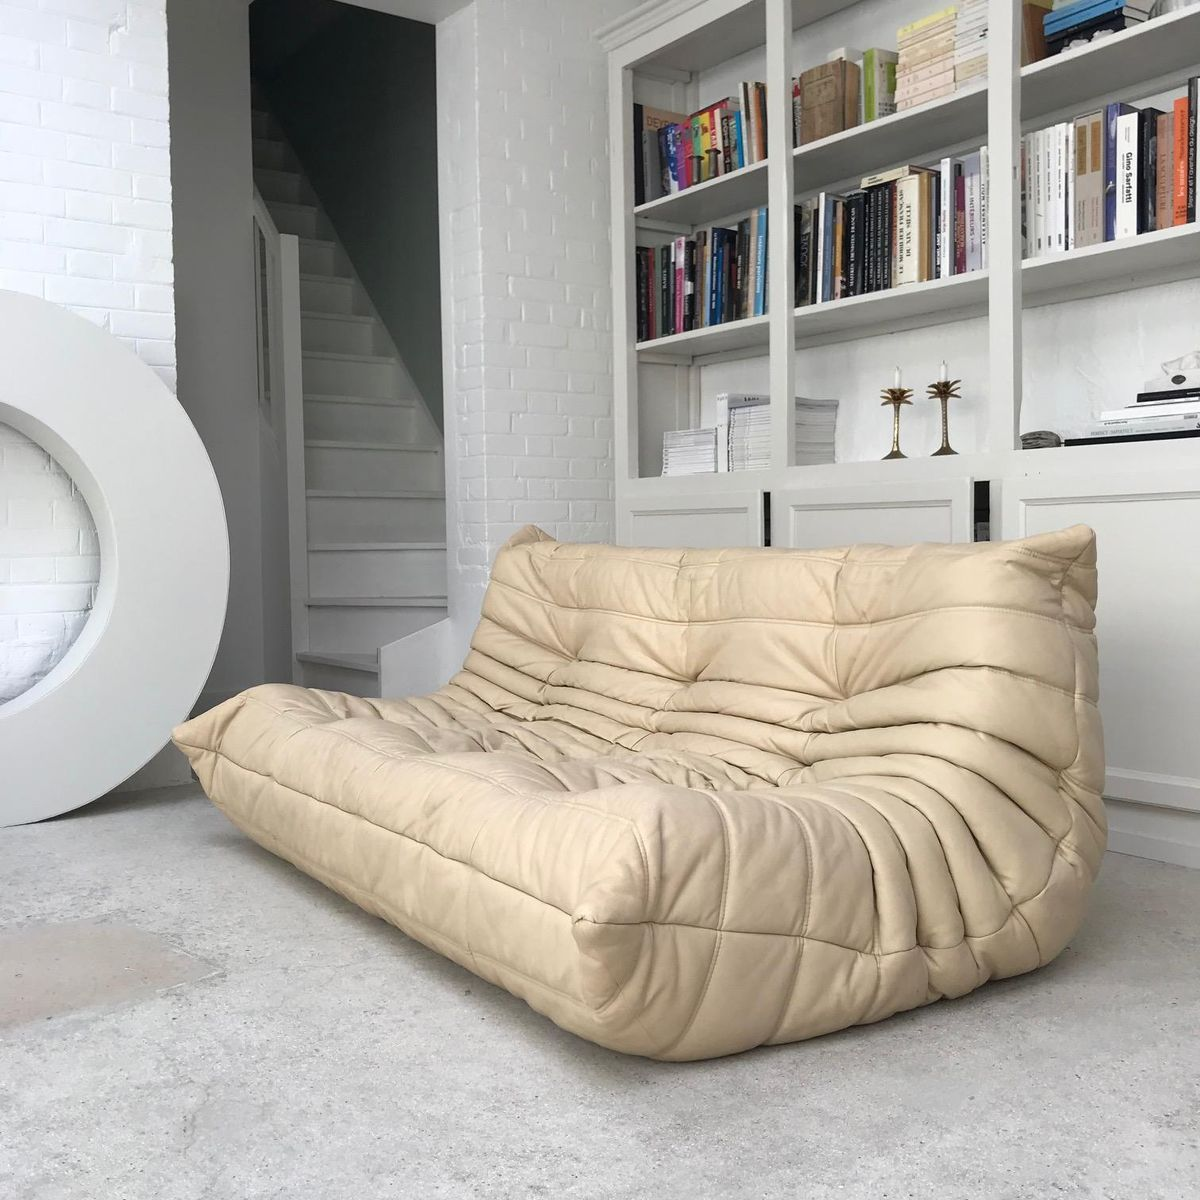 Togo Sofa Pamono Togo Sofa By Michel Ducaroy For Ligne Roset 1973 In 2019 Living